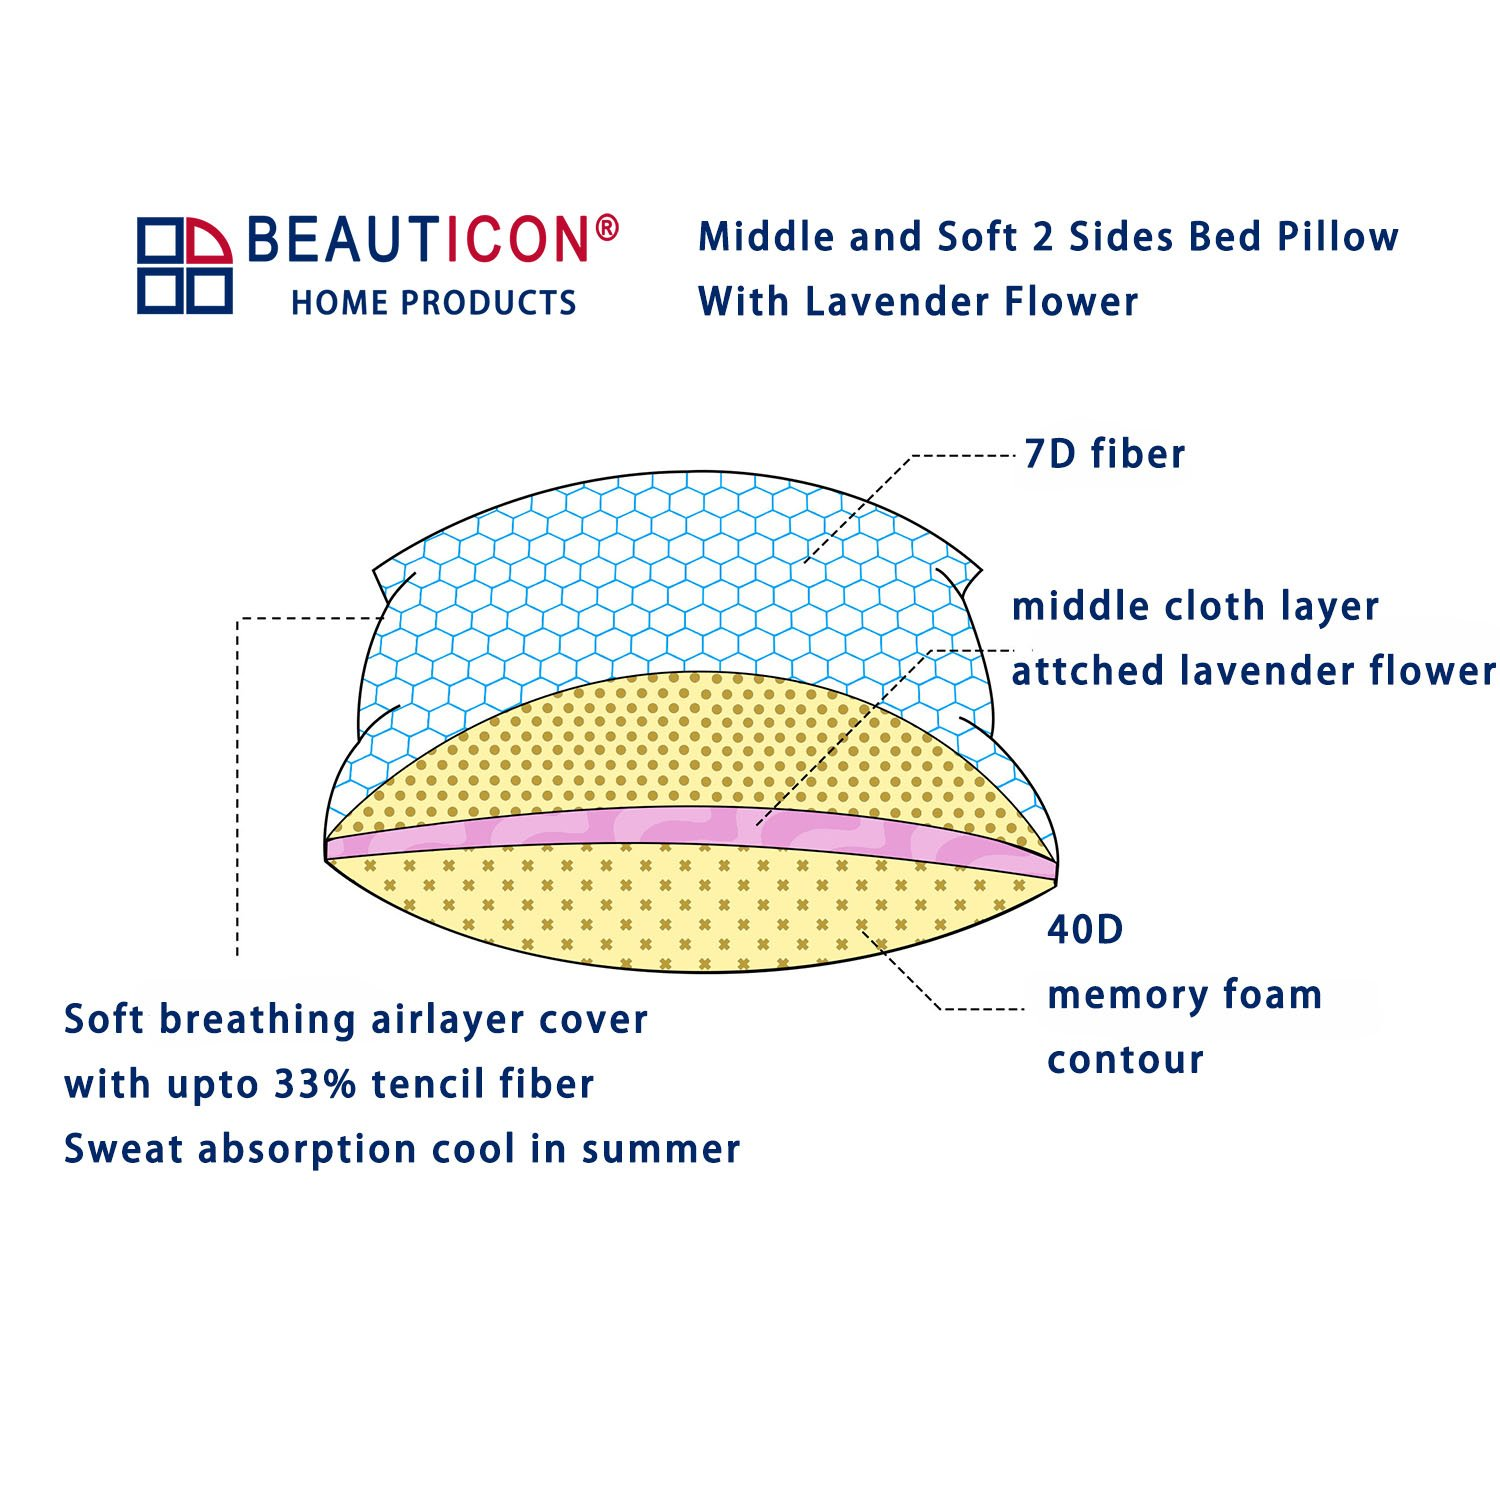 Medium Firm and Soft 2 Sides Bed Pillow Sleep With Lavender Flower Addin for Sleepless Neck Pain and Insomnia Relief Memory Foam And Fiber Filled Airlayer Cover Removable and Machi (Standard 17x25in) BEAUTICON